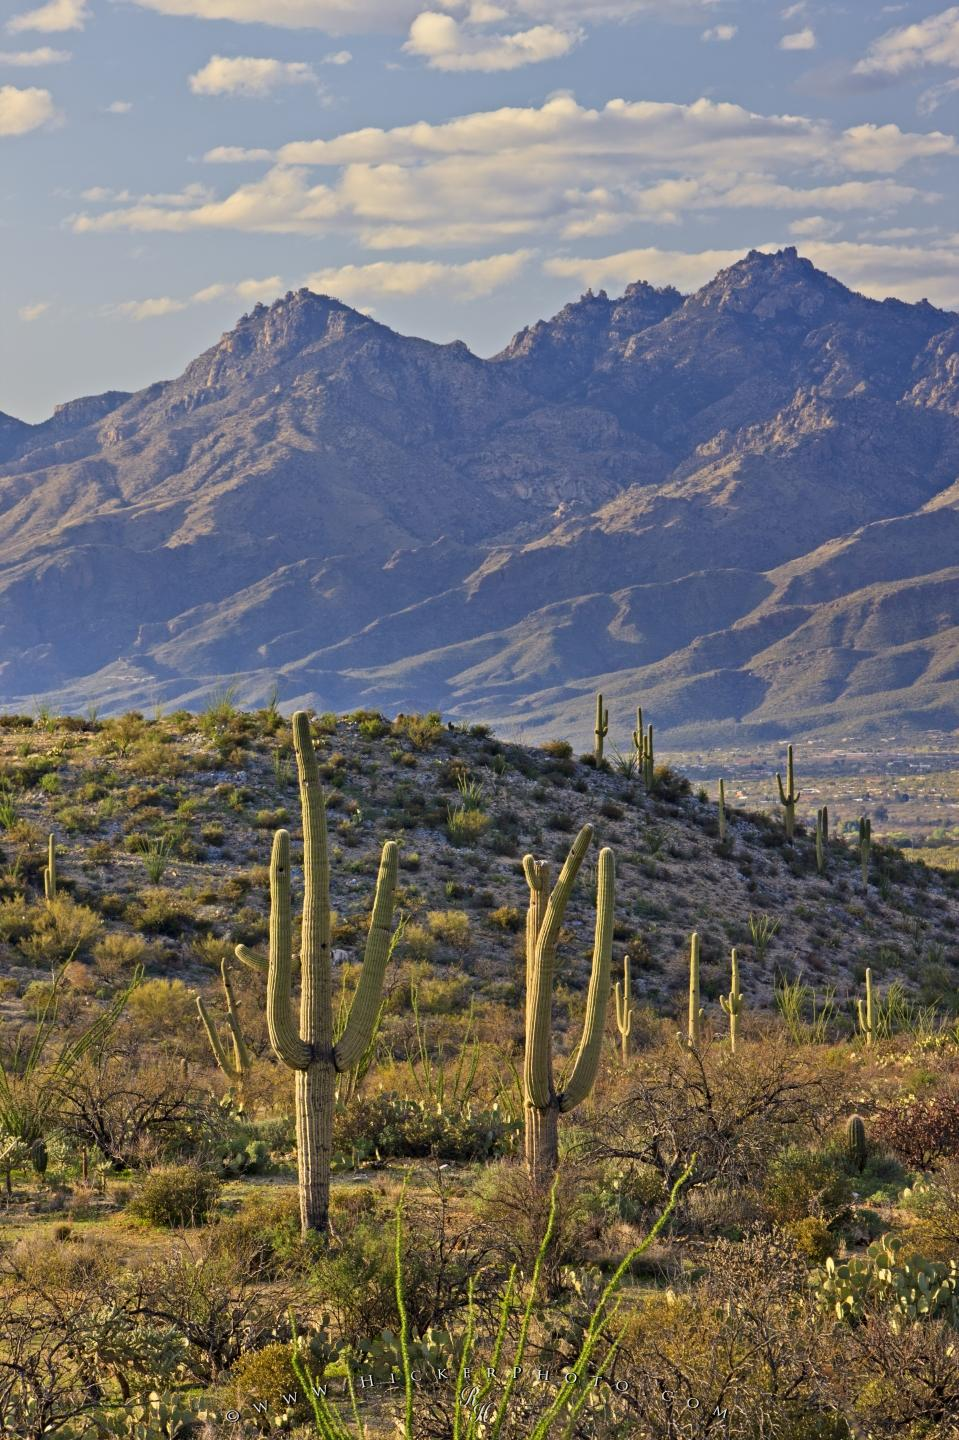 wallpaper background Mountain Landscape Saguaro National Park 959x1440